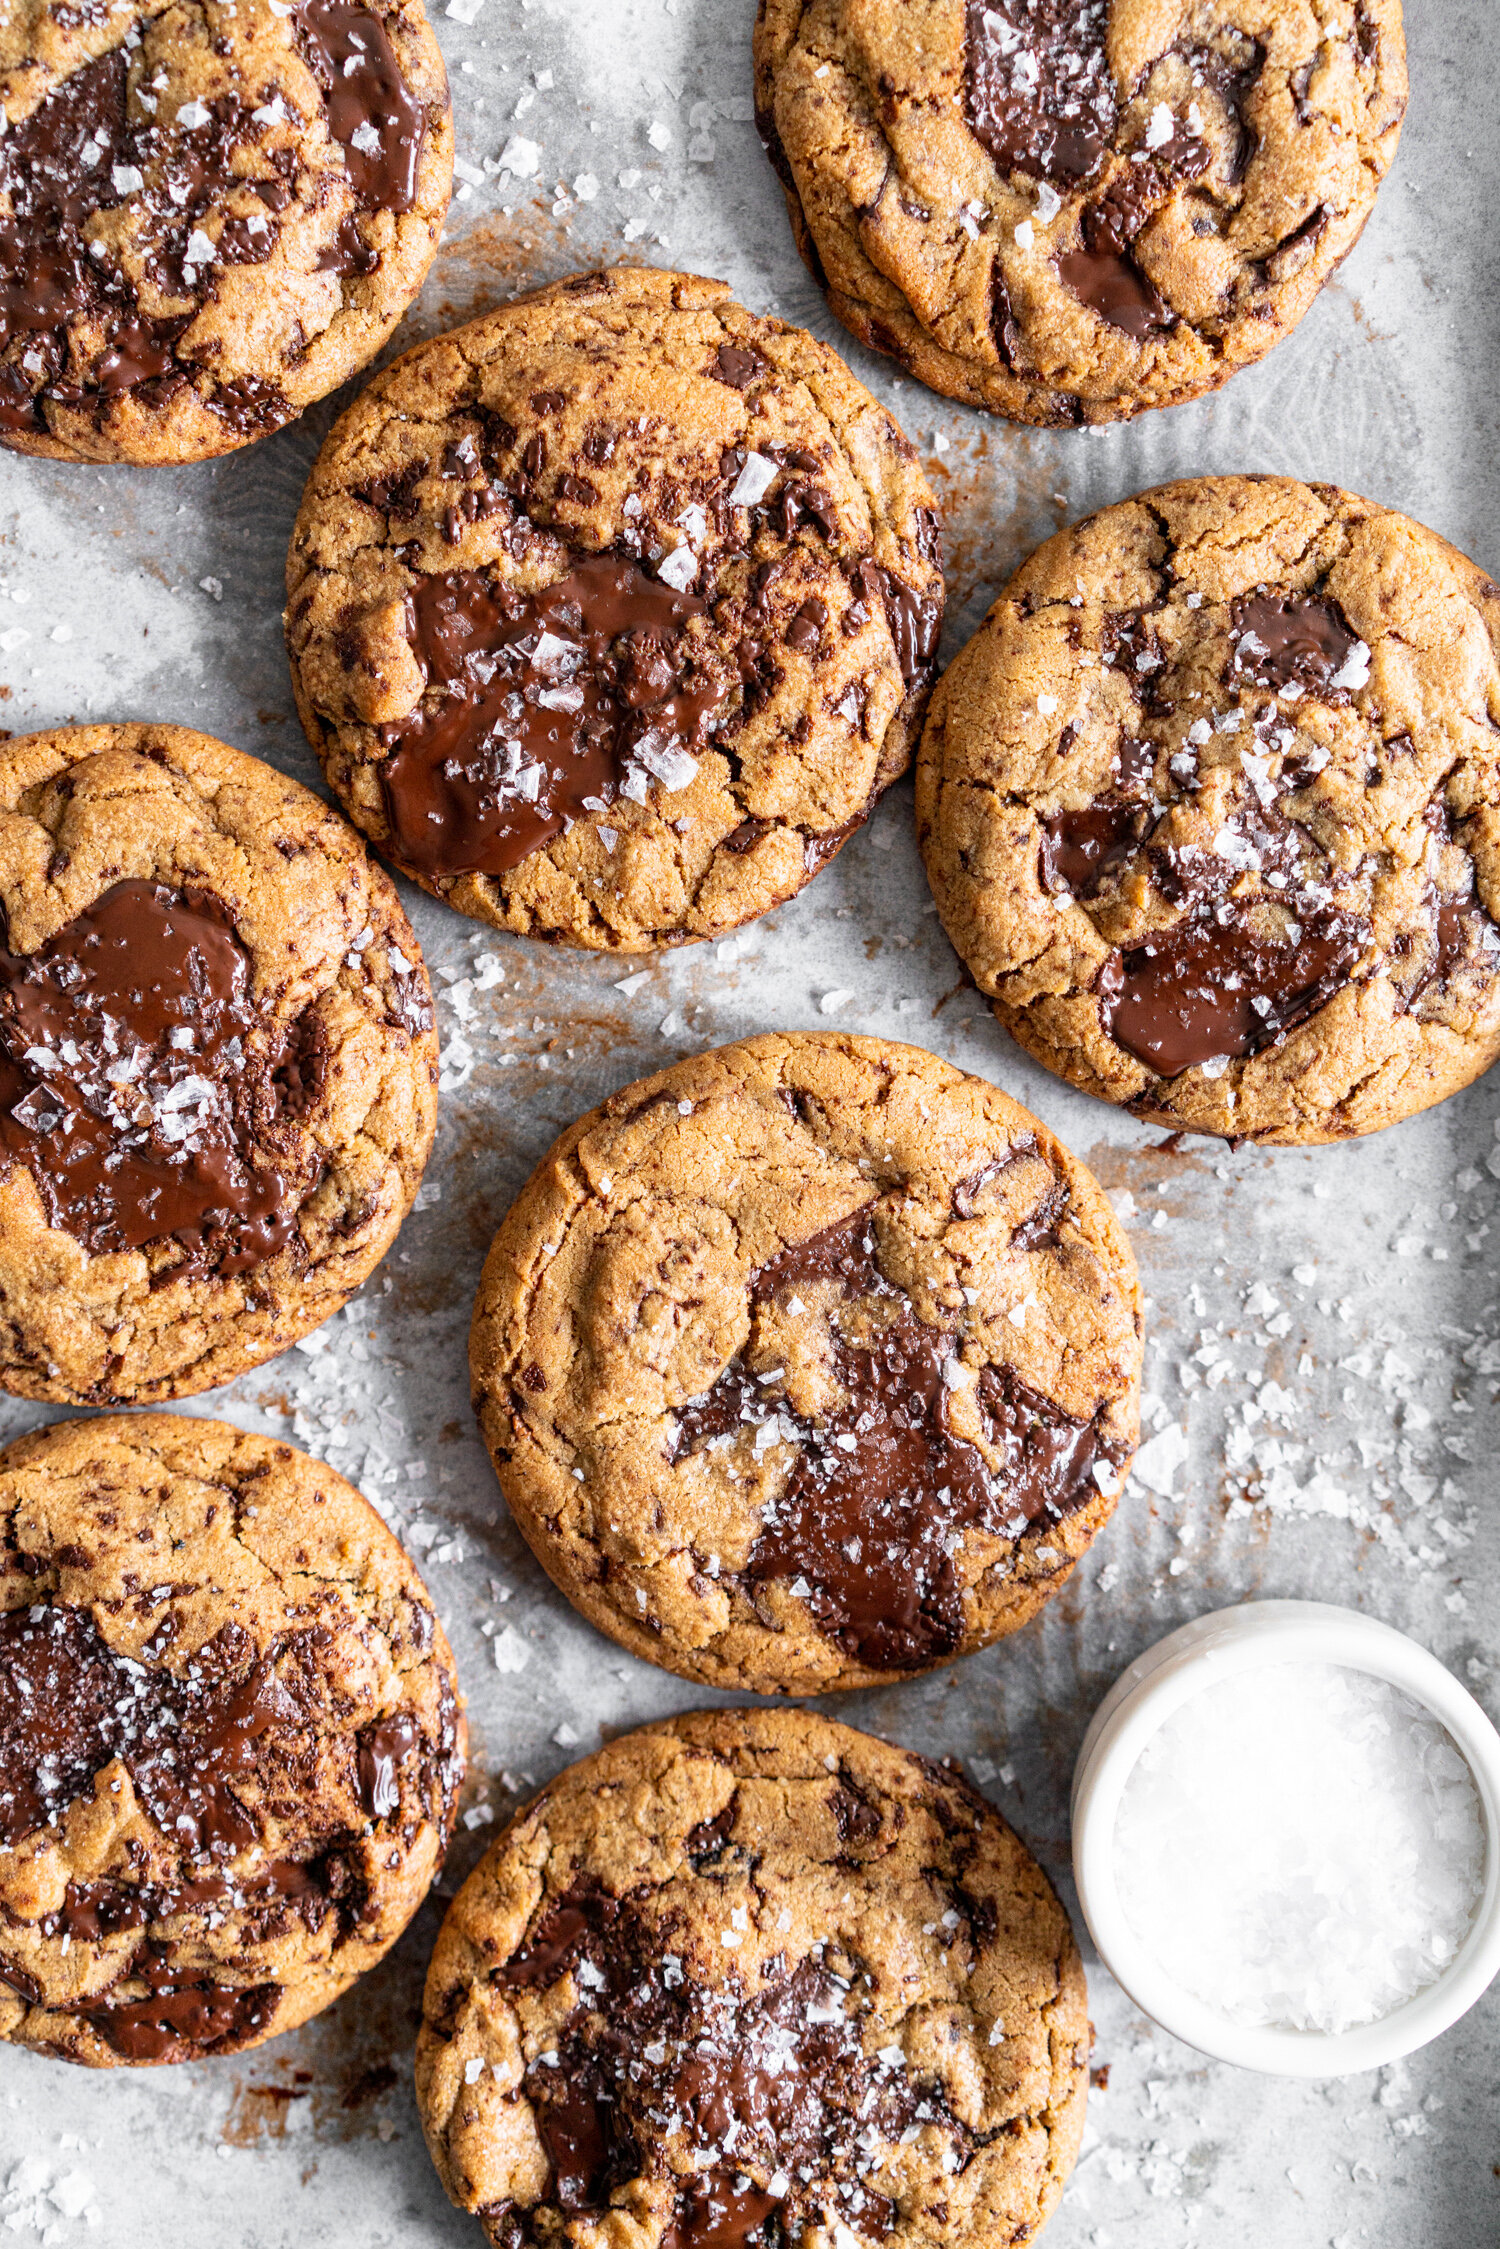 Dark Chocolate Peanut Butter Stuffed Chocolate Chip Cookies